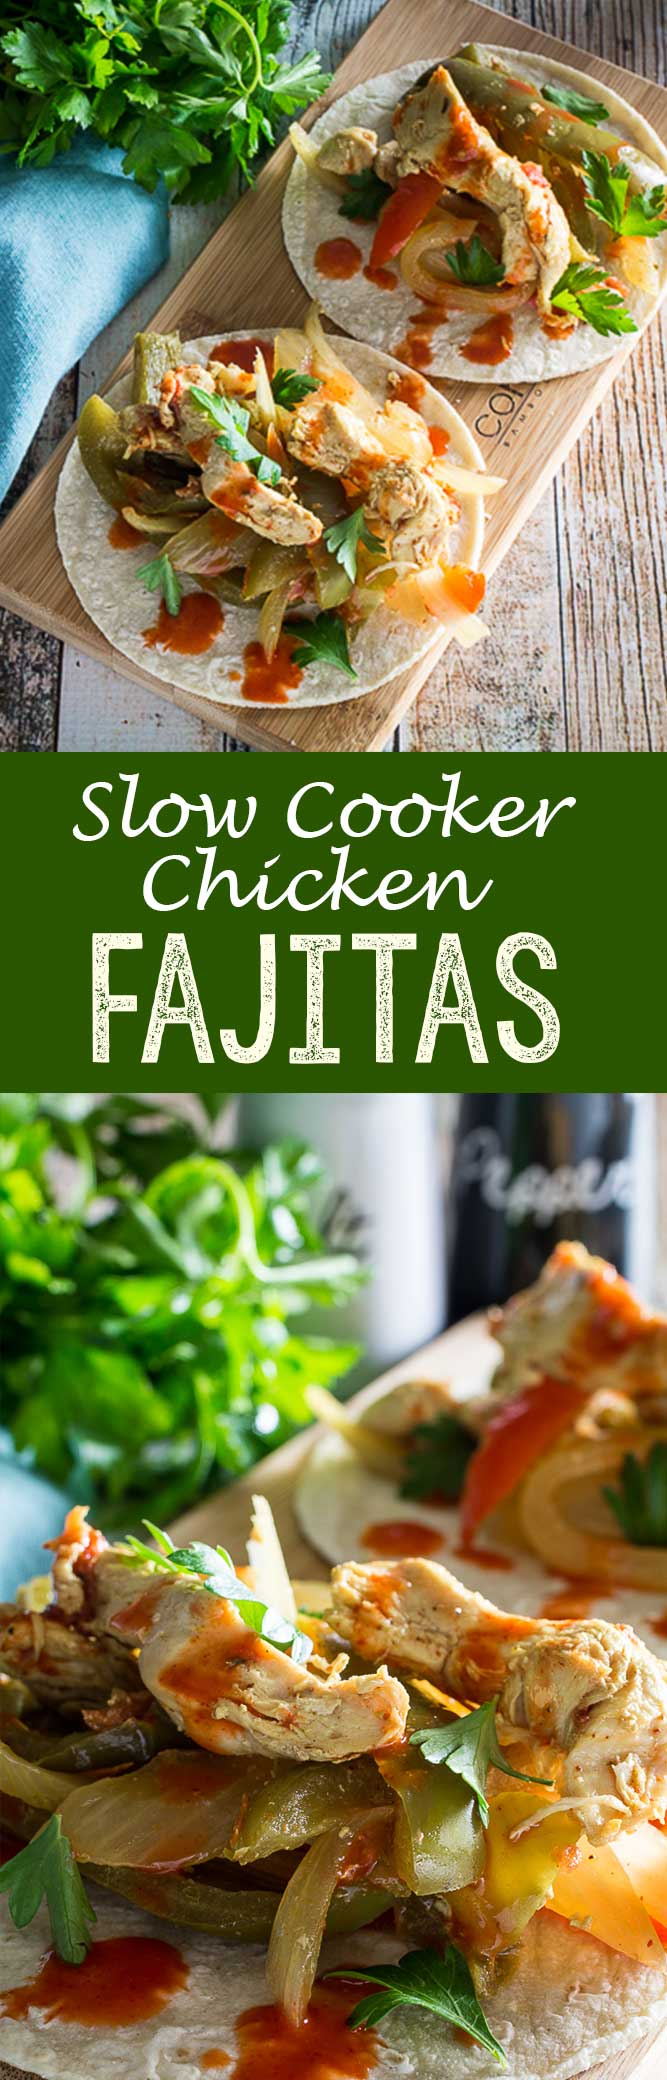 Crockpot Chicken Fajitas: Incredibly easy and delicious Slow Cooker Chicken Fajitas! This recipe is a set-it-and-forget-it meal your whole family will love.